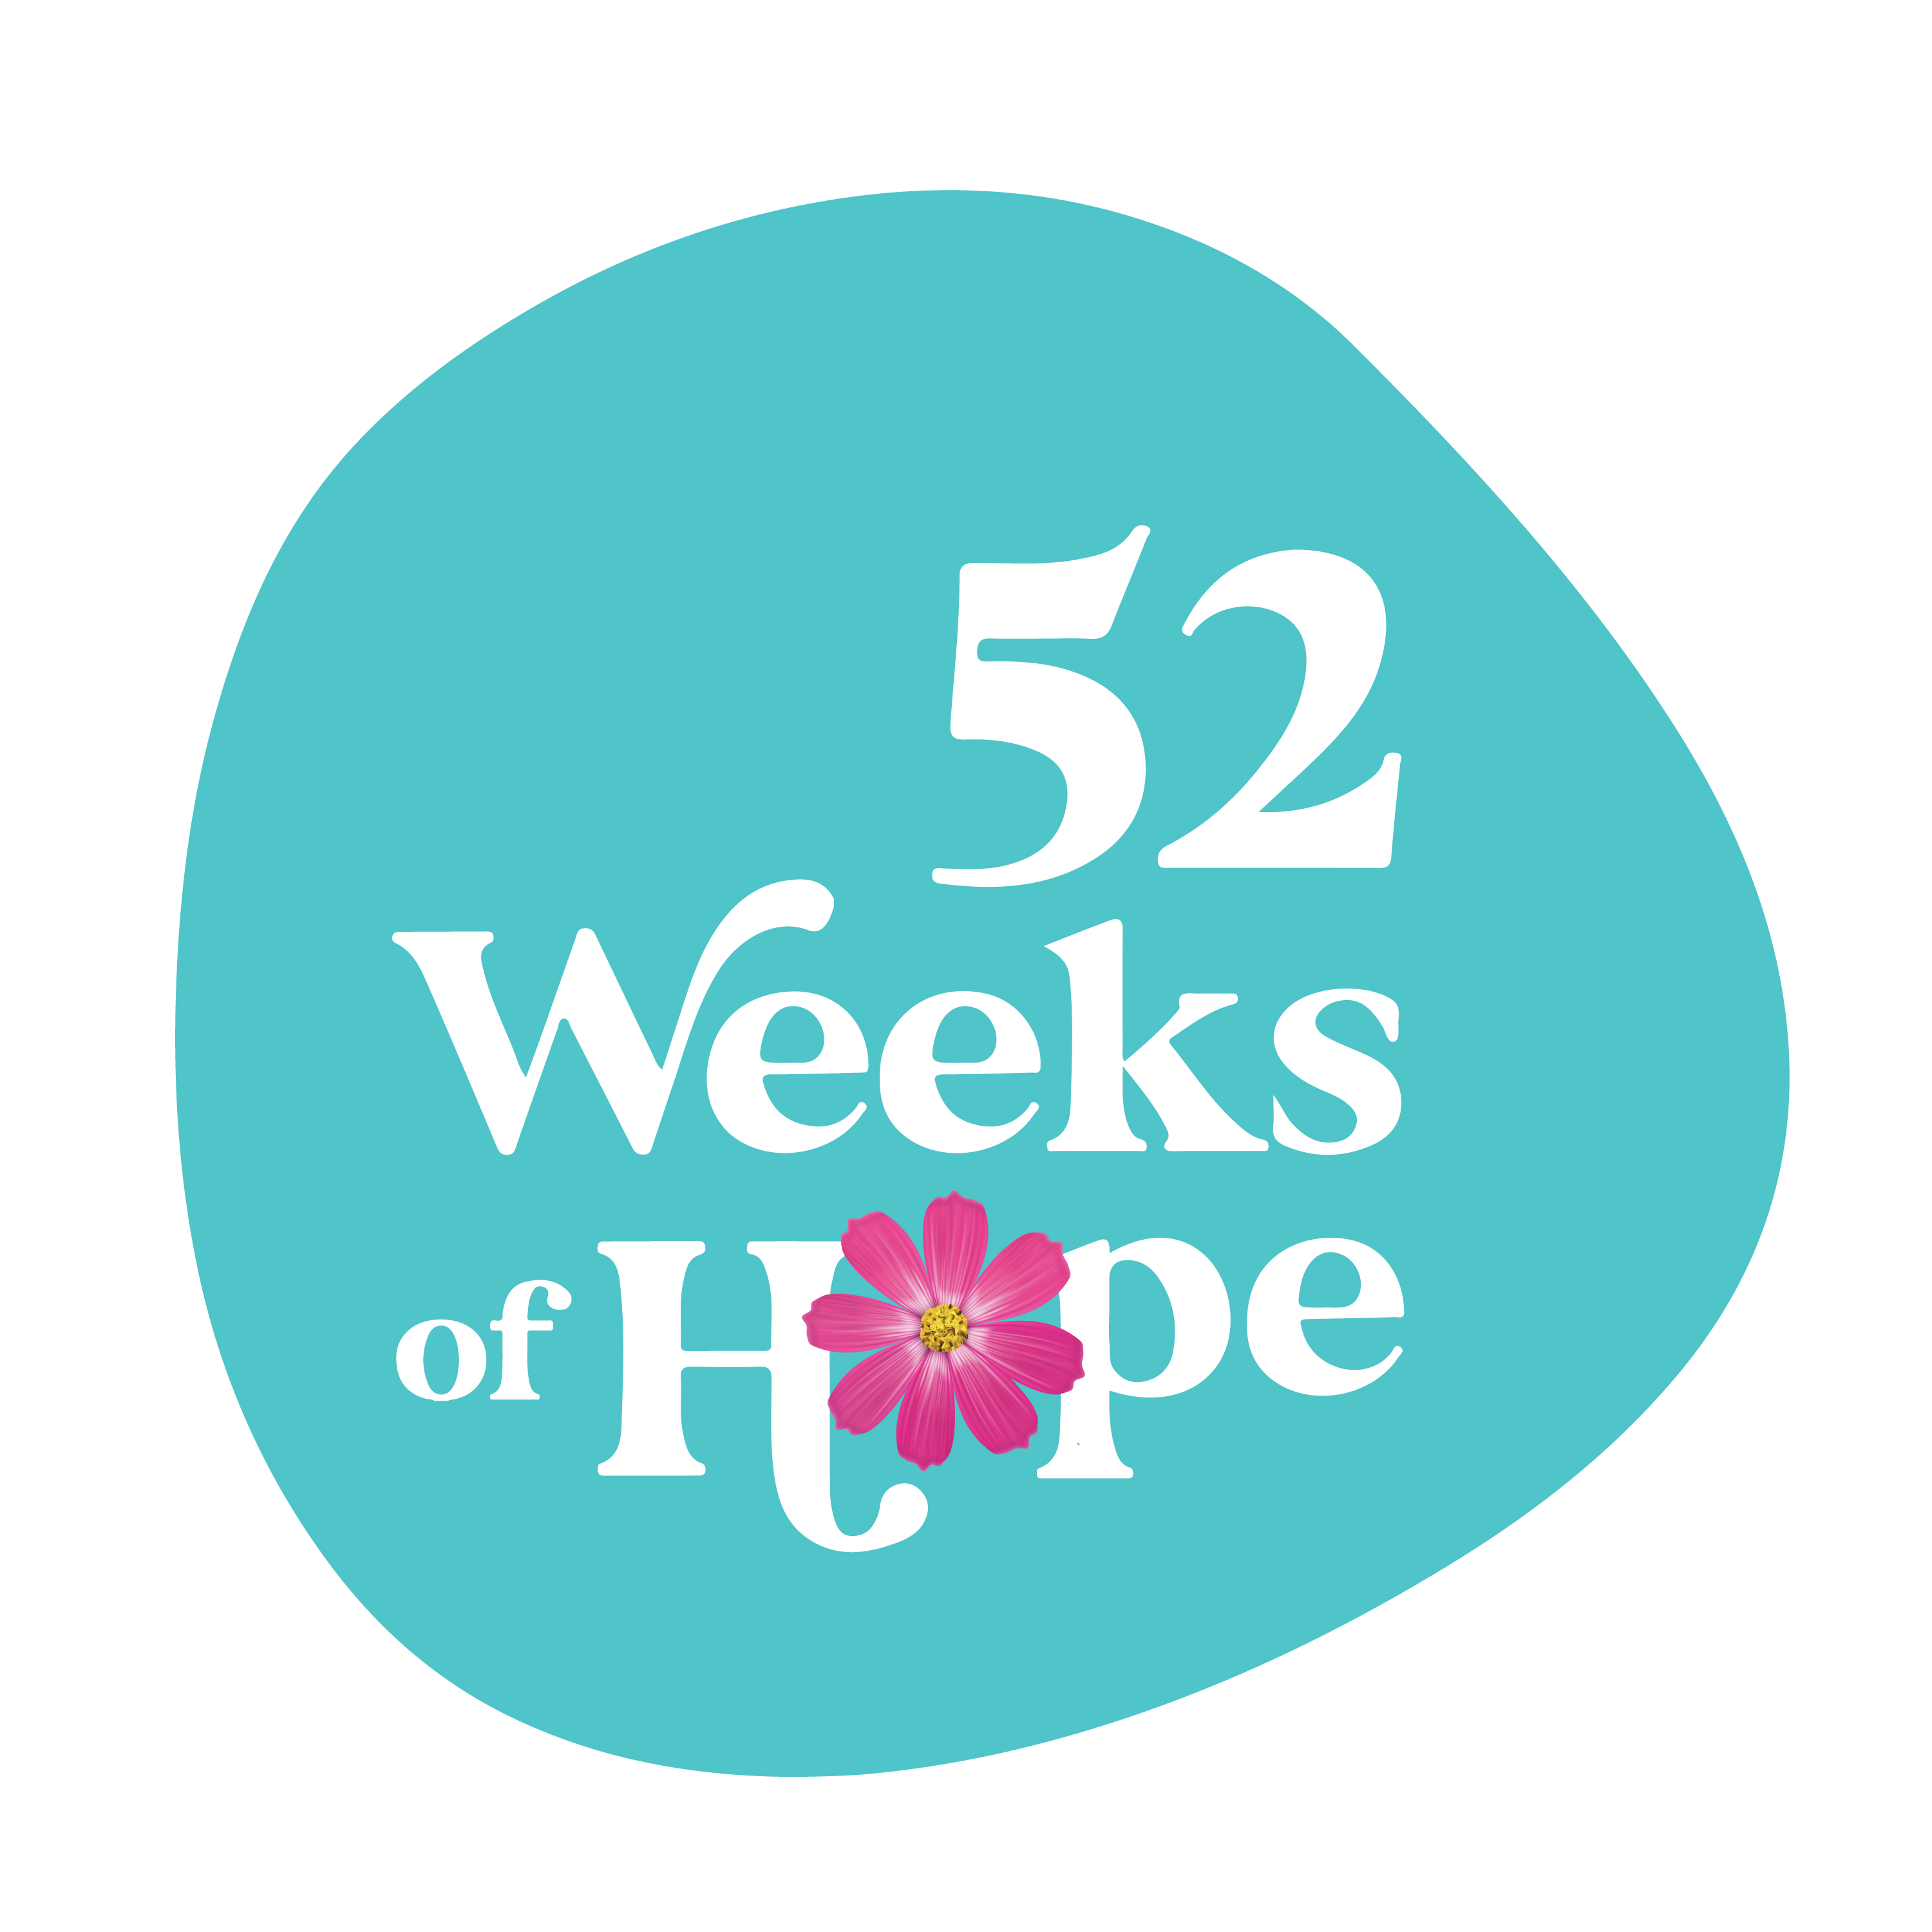 52 Weeks of Hope podcast show image